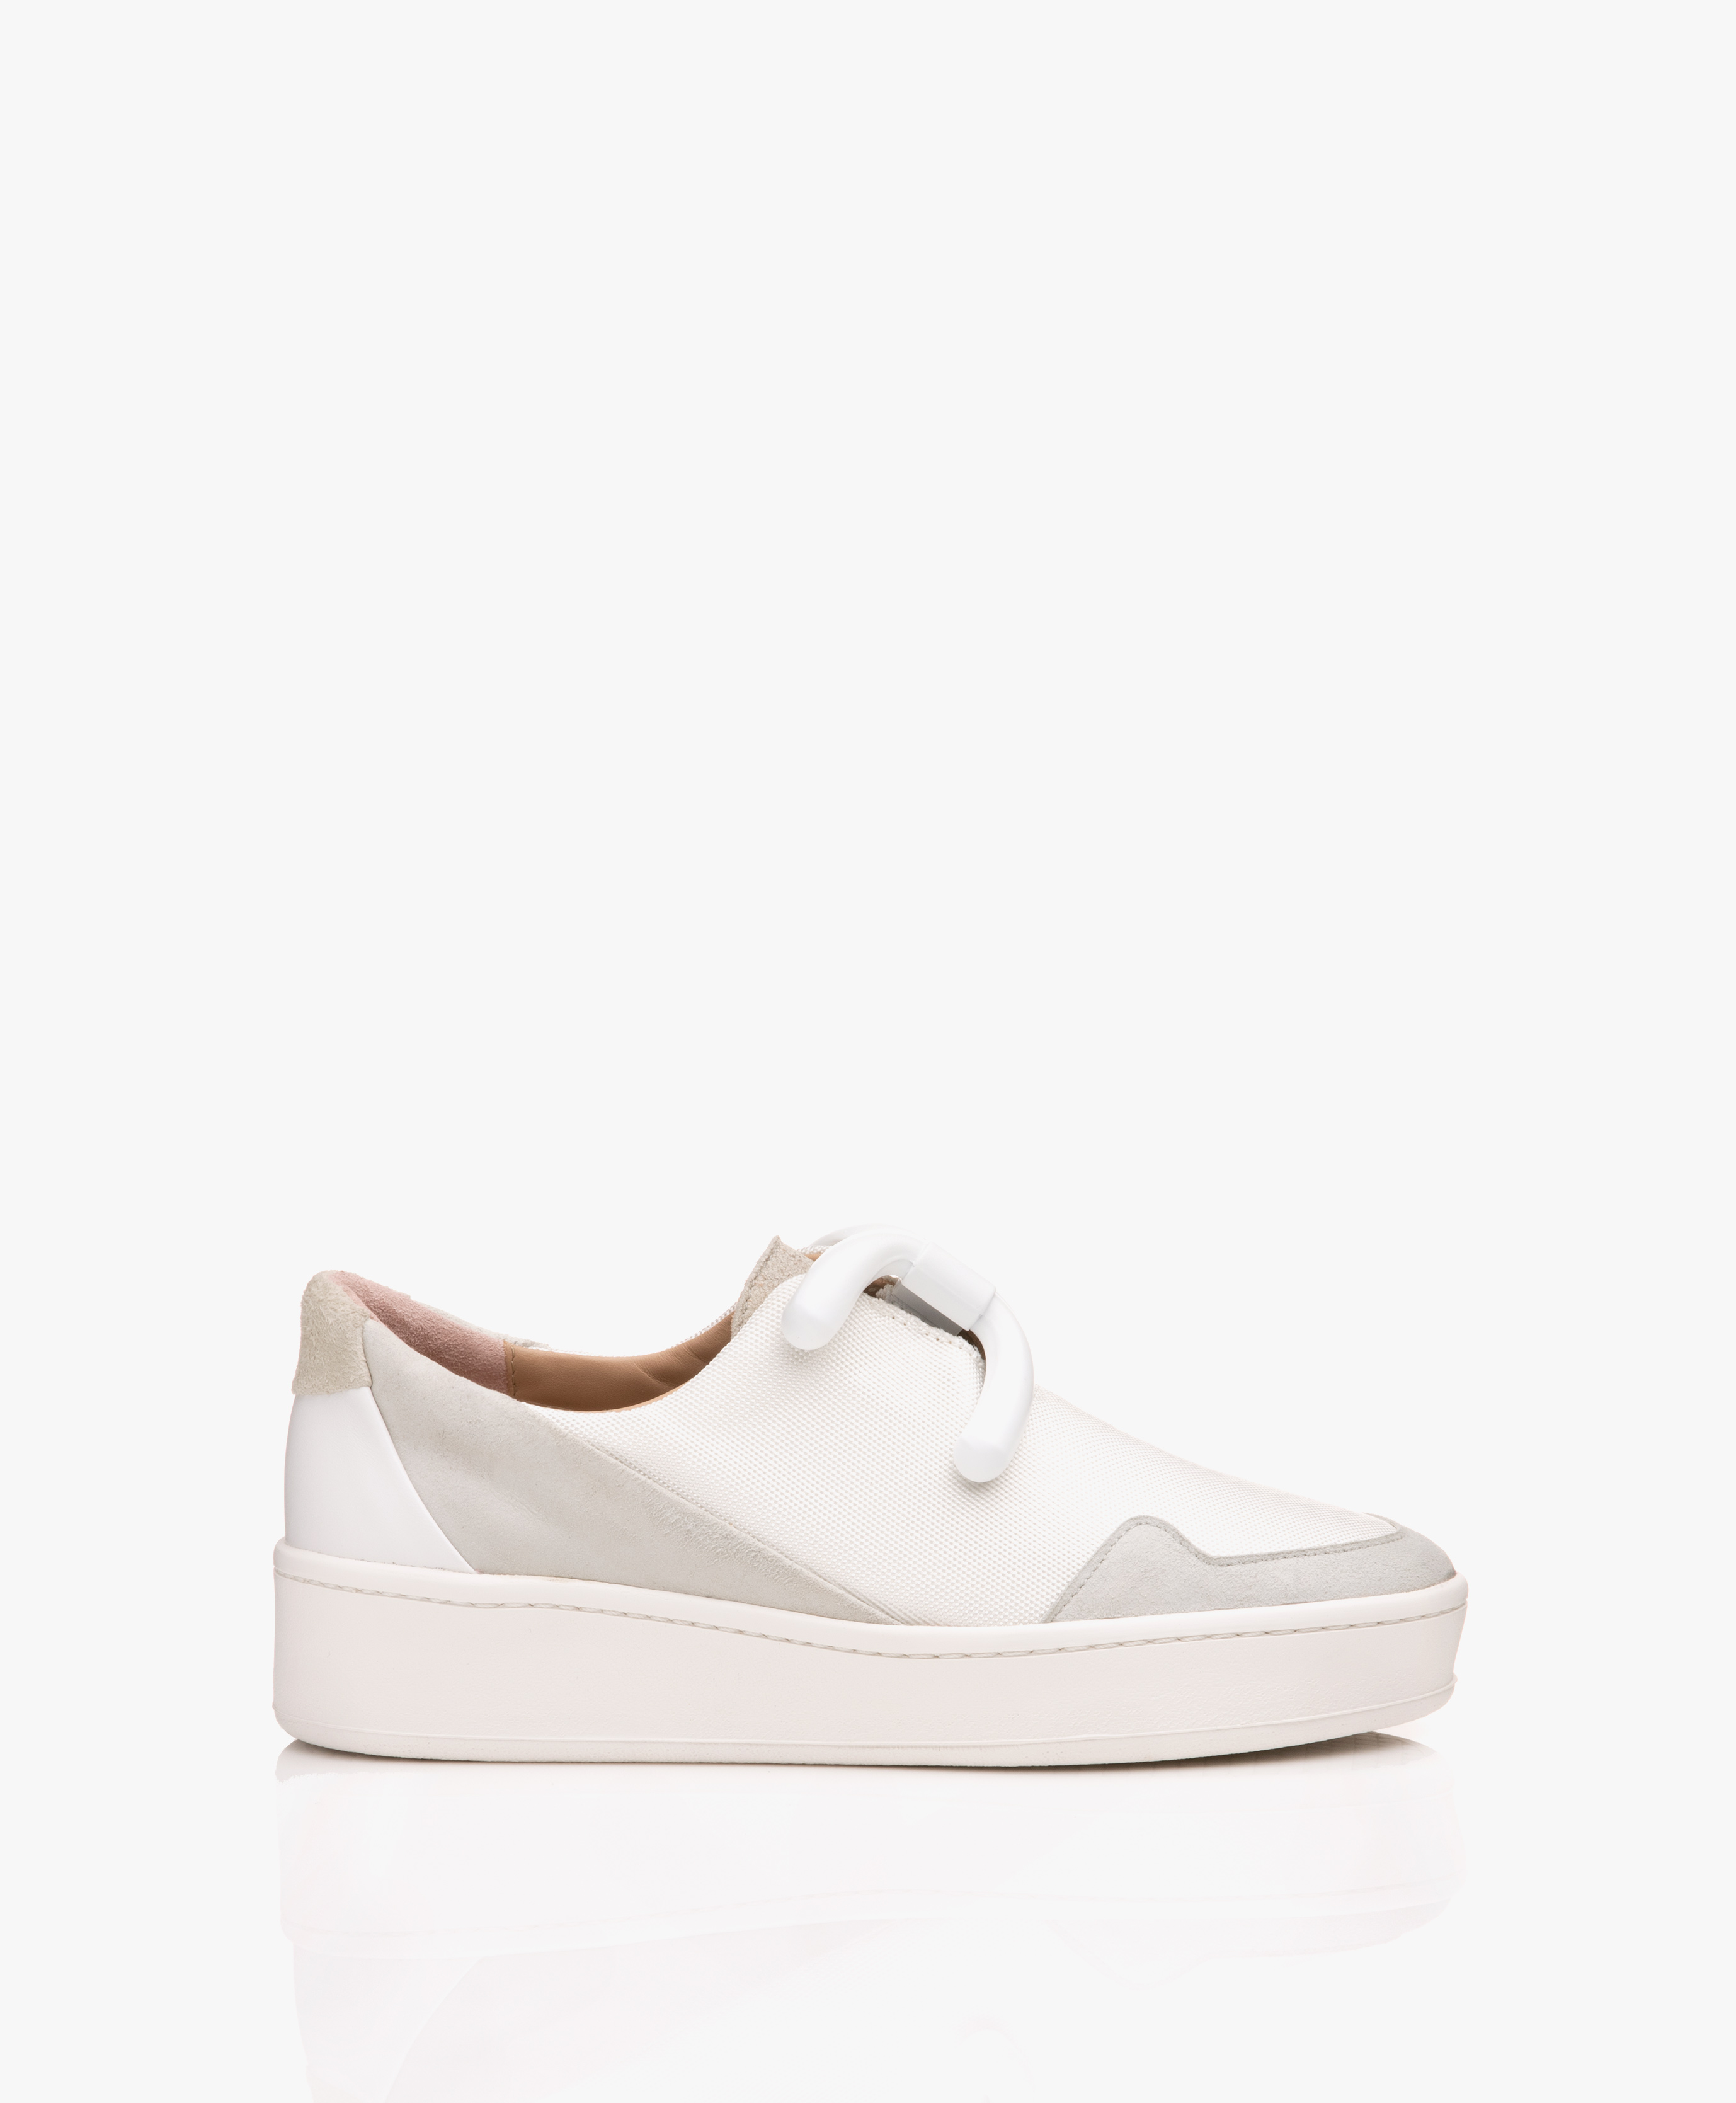 Immagine di An Hour And A Shower Sneakers Knot Camp Slip on in White/Grey/Beige